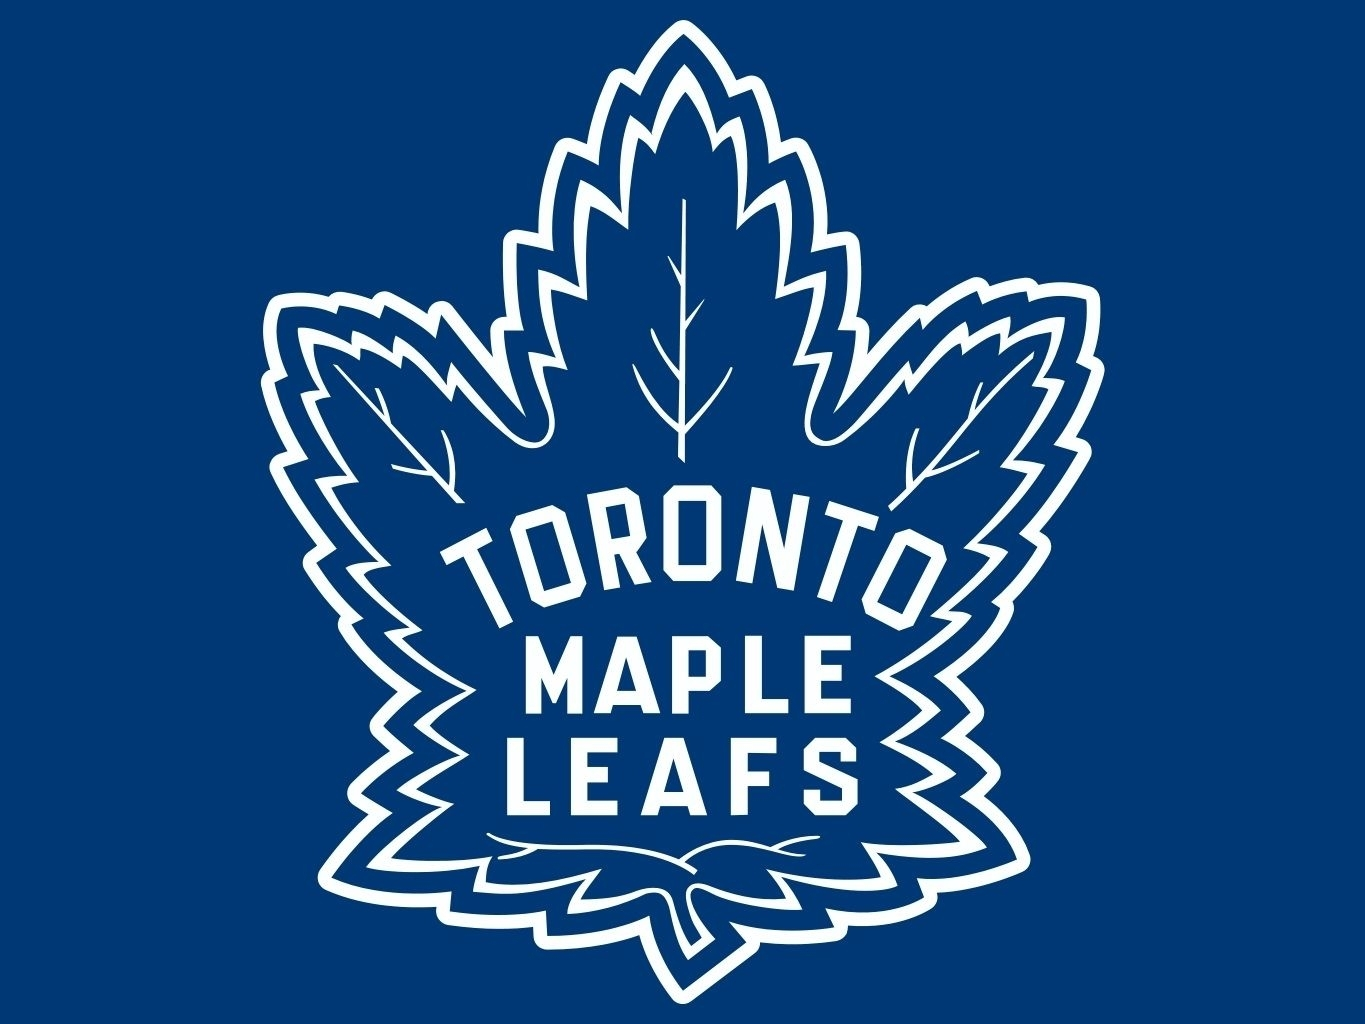 toronto maple leafs wallpapers, 38 free modern toronto maple leafs